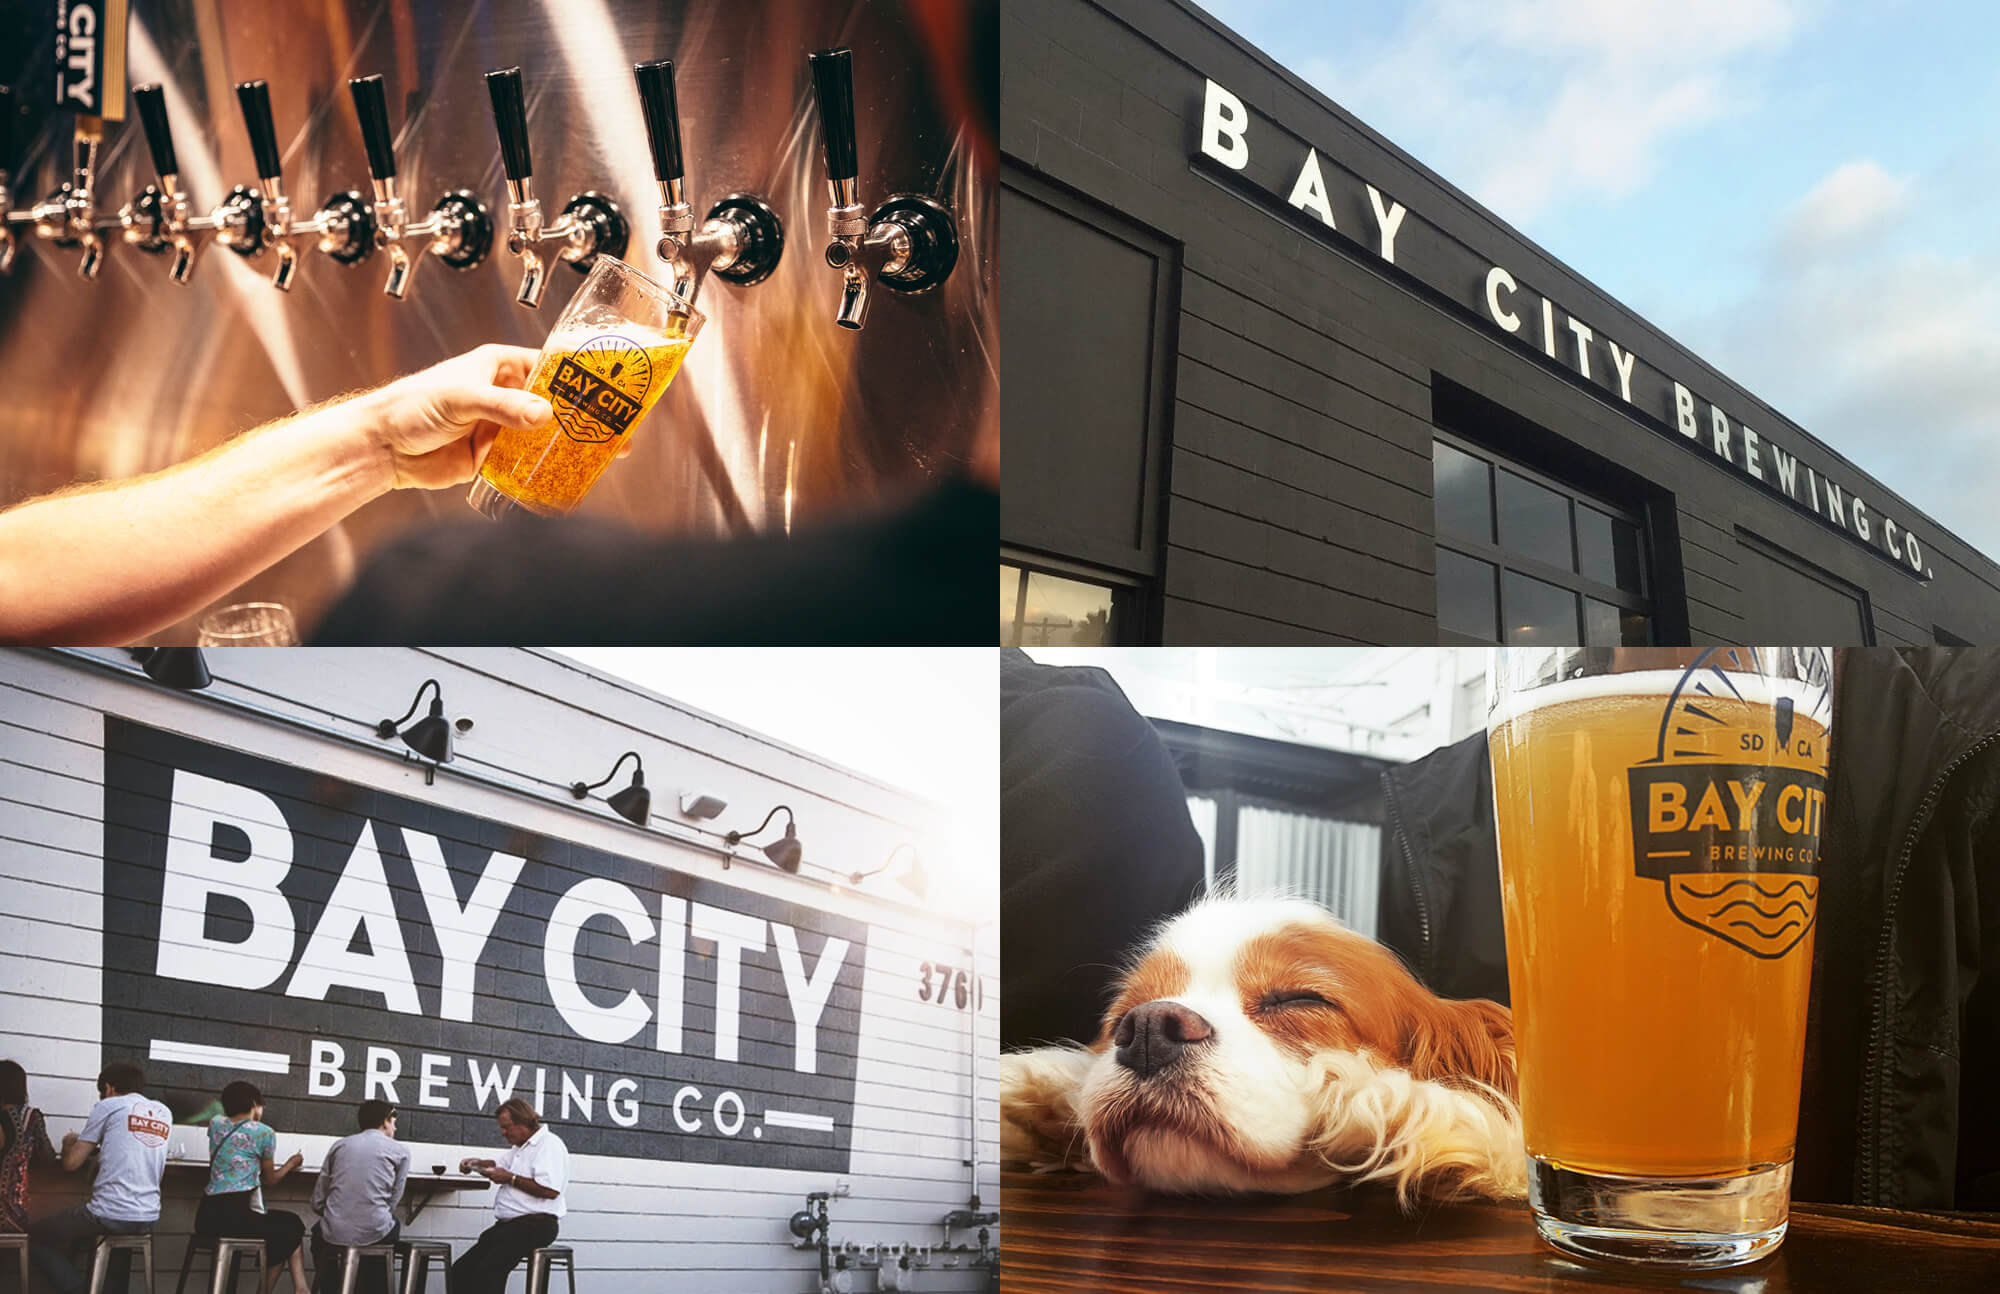 bay-city-brewing-company-san-diego-grid-2